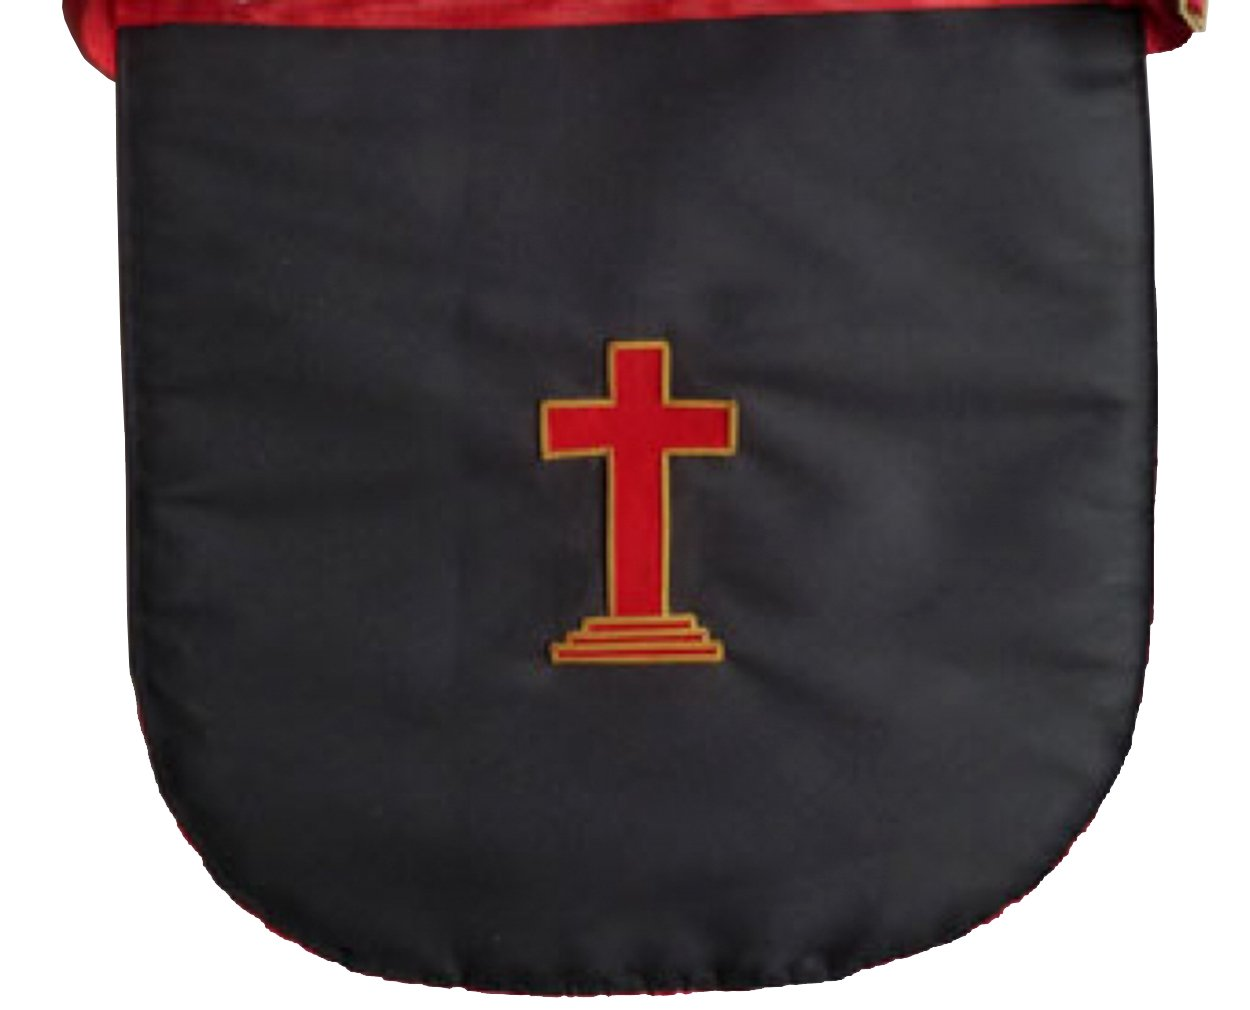 Masonic Scottish Rite Round Satin apron - AASR - 18th degree - Bricks Masons